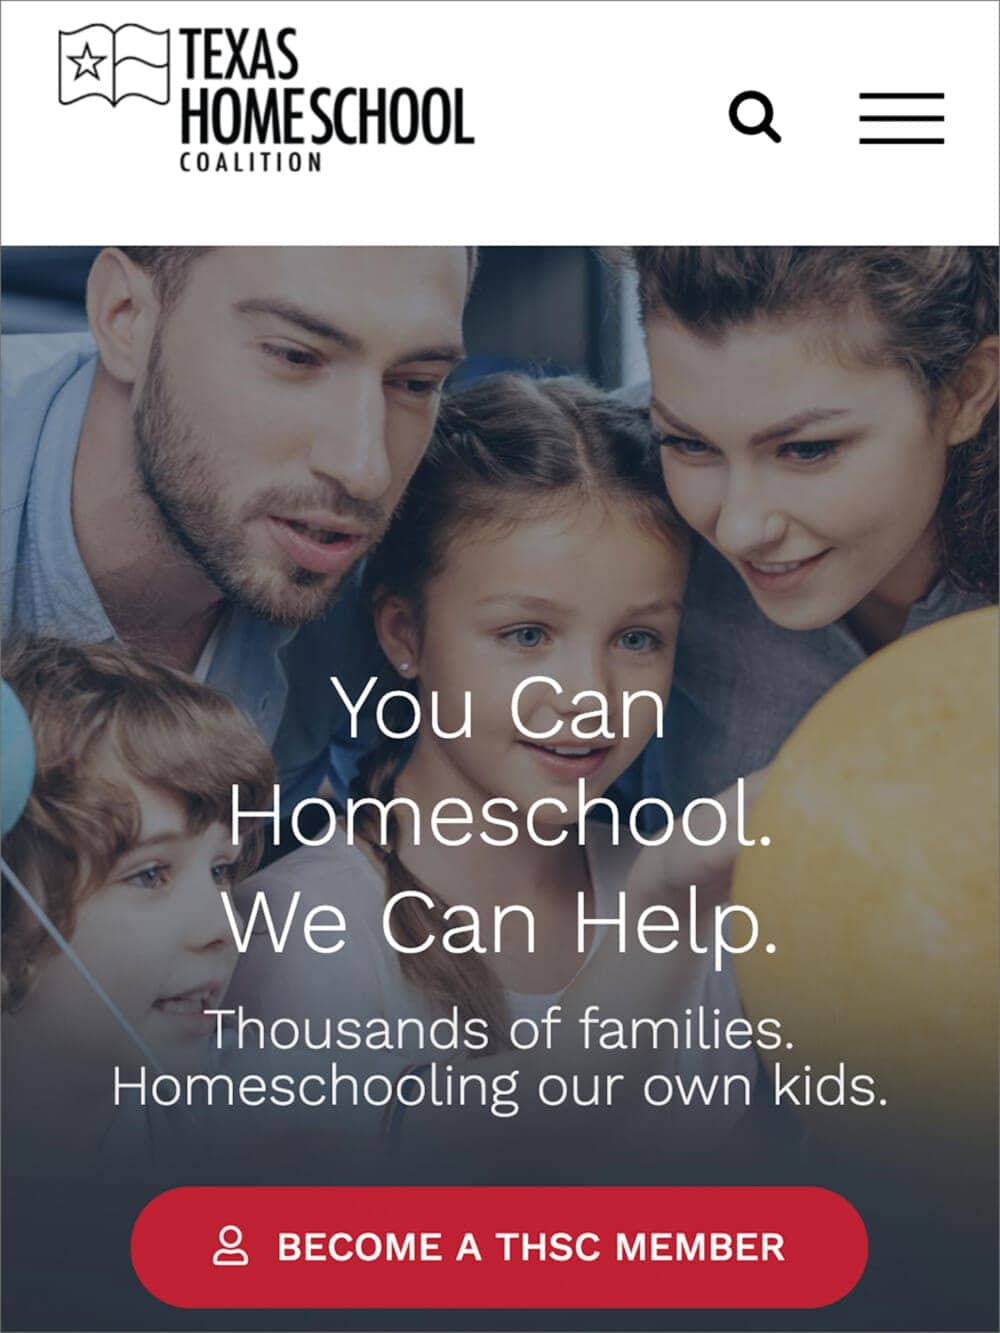 a screen capture of the texas homeschool coalition website